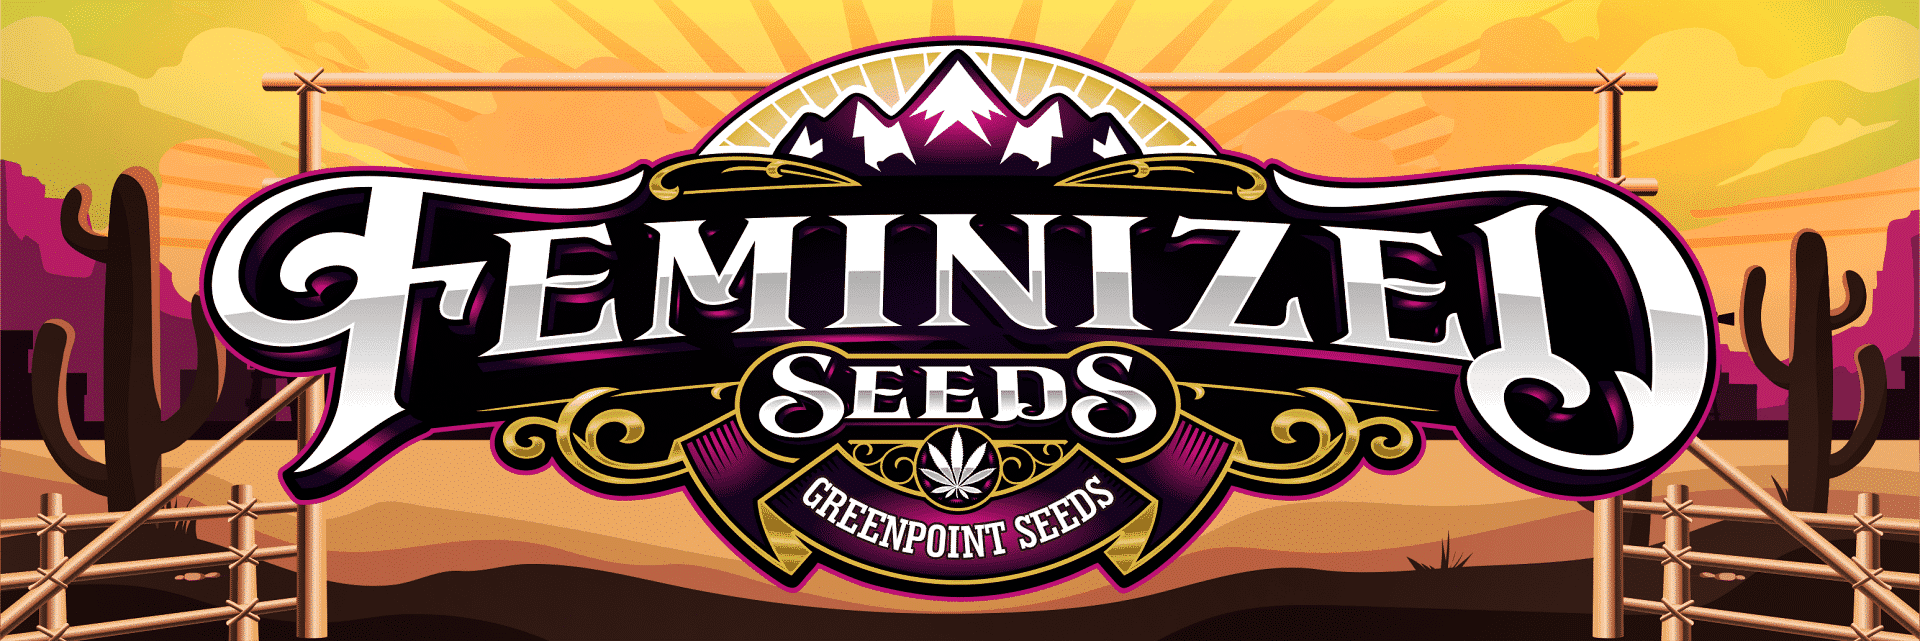 Feminized Seeds - Female Cannabis Seeds - Greenpoint Seeds - Colorado Seed Bank